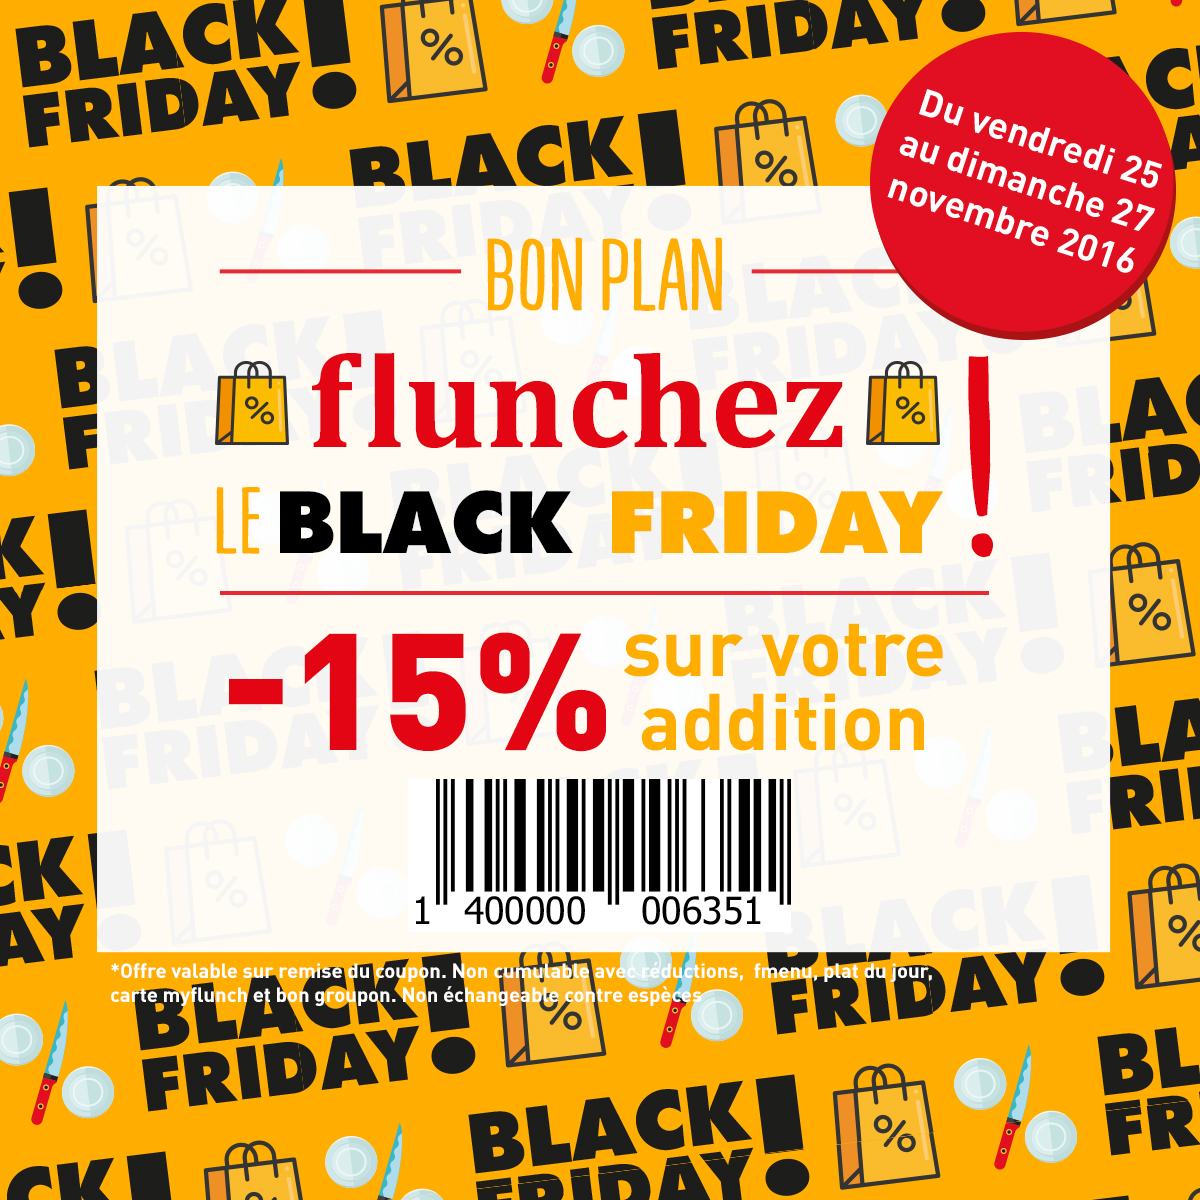 flunch 15 sur l 39 addition du vendredi 25 au dimanche 27 novembre. Black Bedroom Furniture Sets. Home Design Ideas